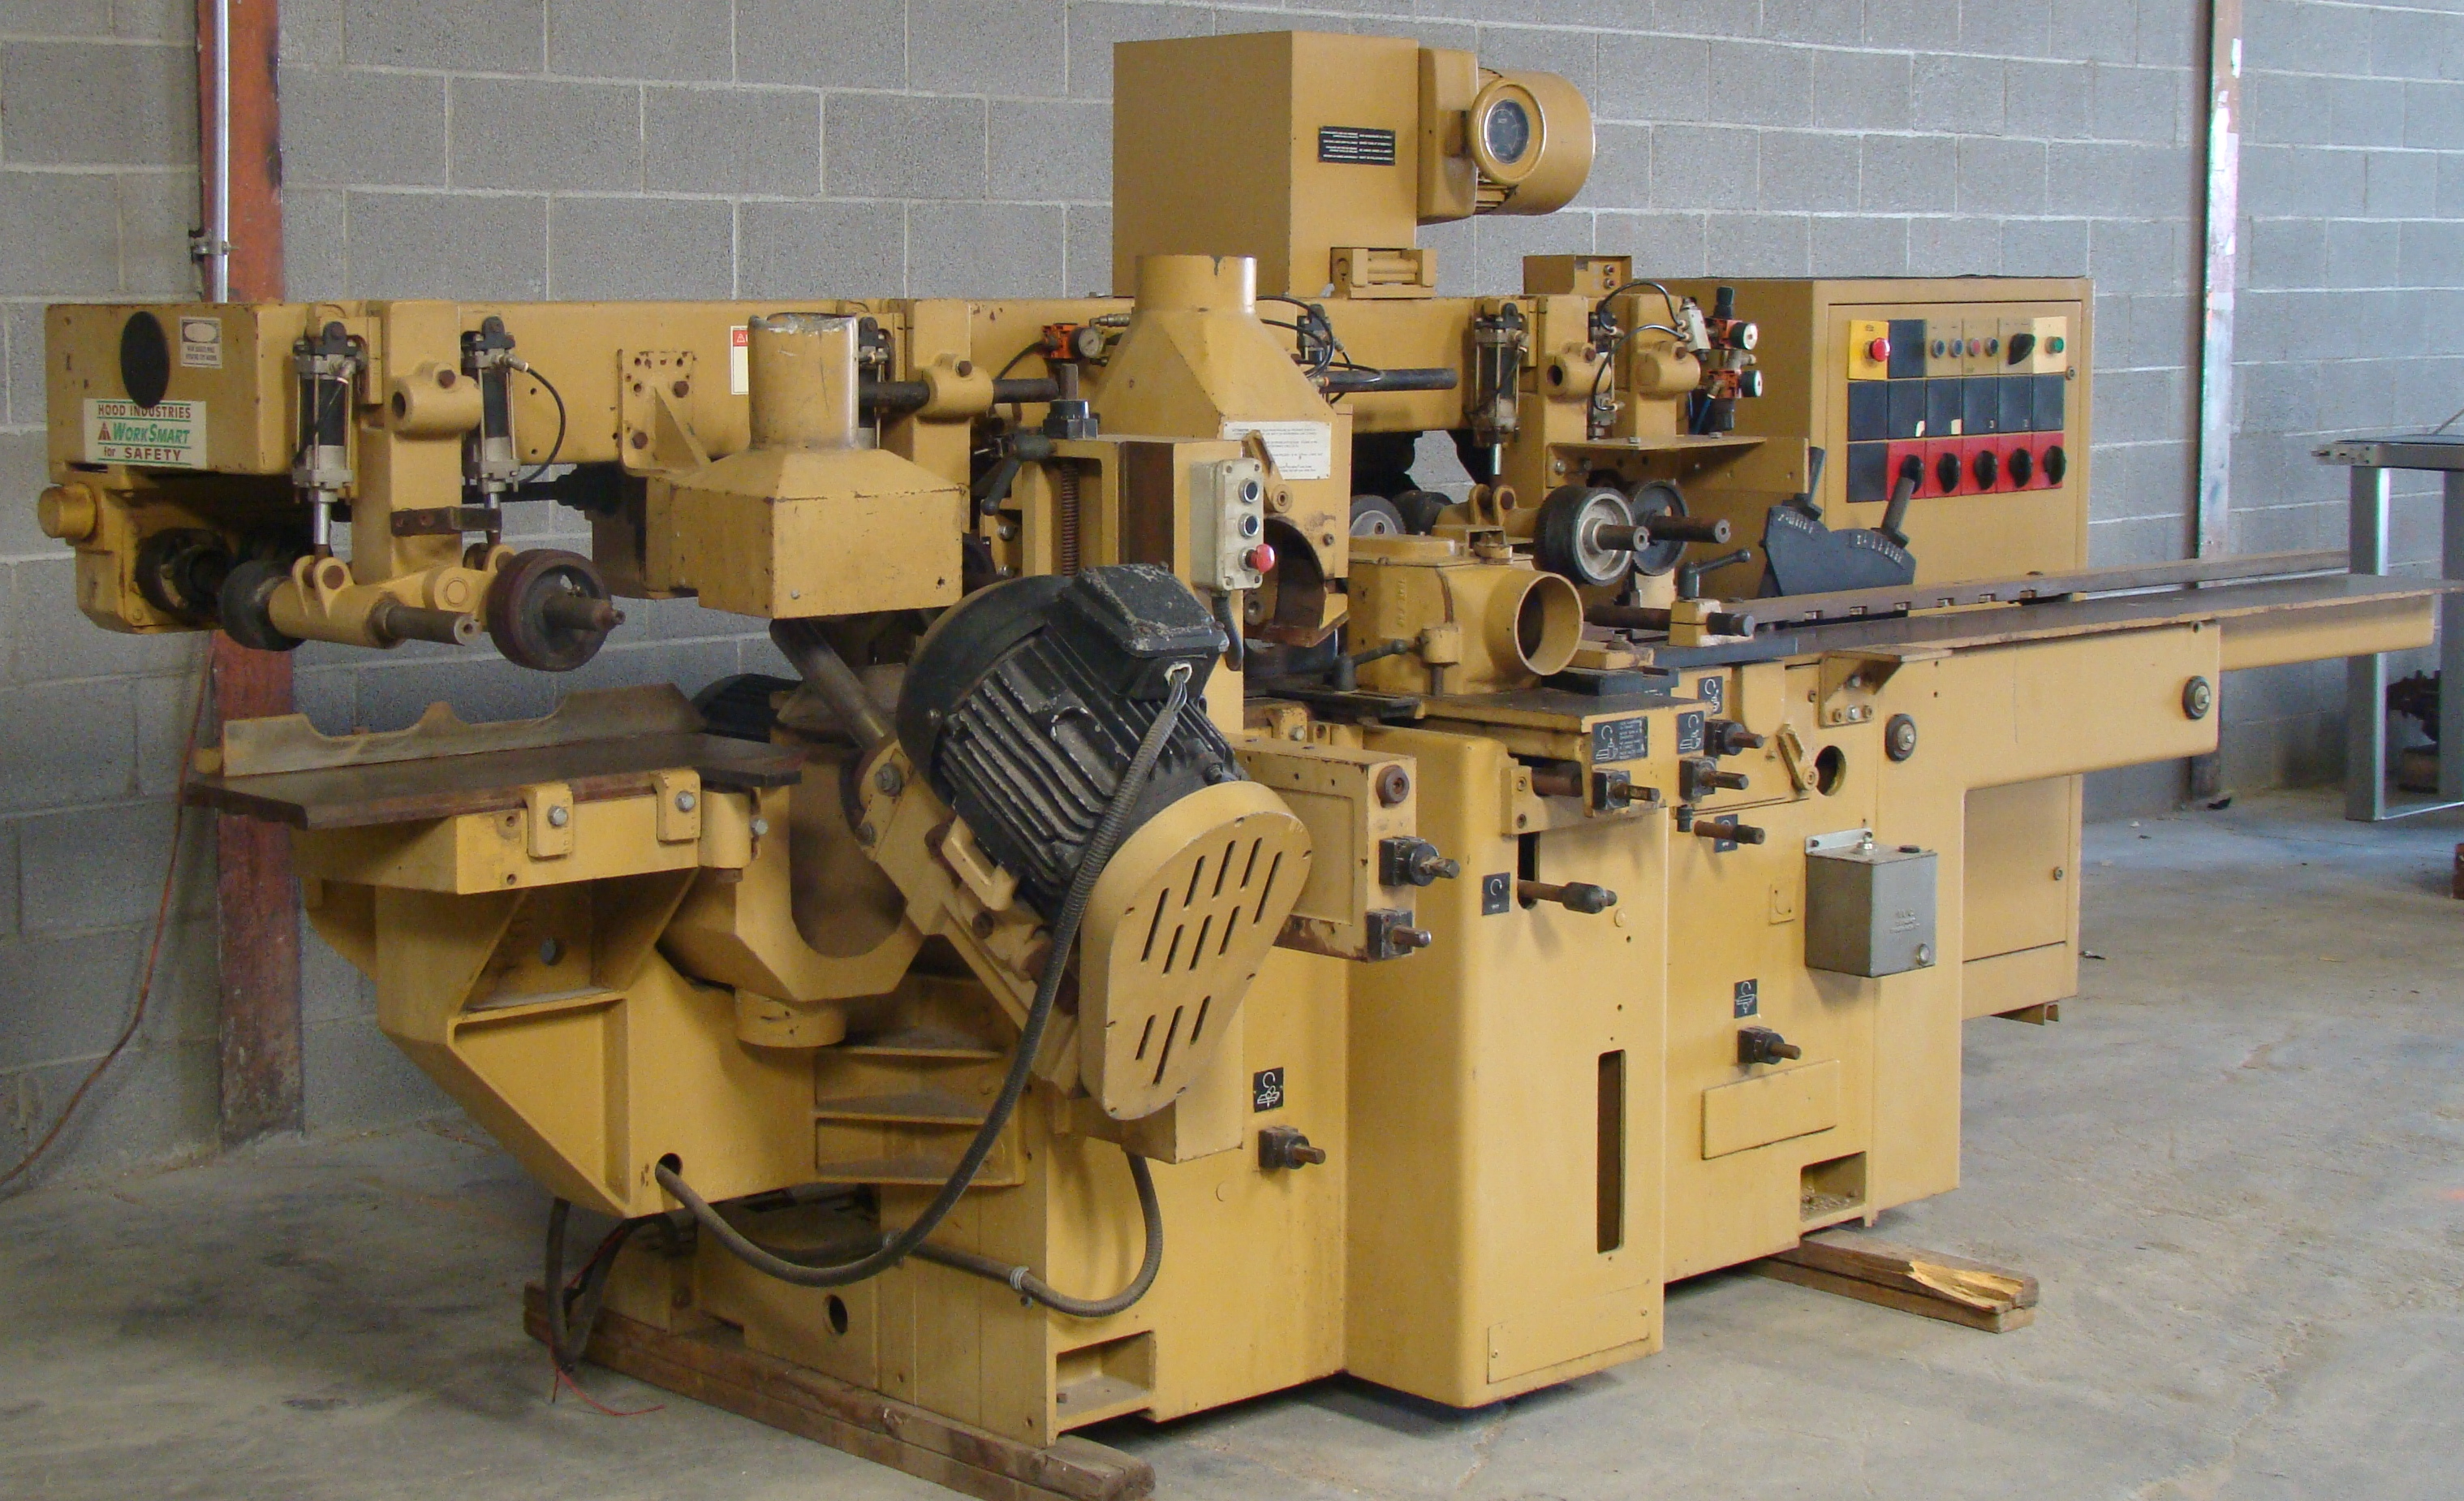 """SCMi 9"""" Wood Moulder, Model: P230 5 Head 6.6HP 220/440 Volts 3Phase - Image 13 of 14"""